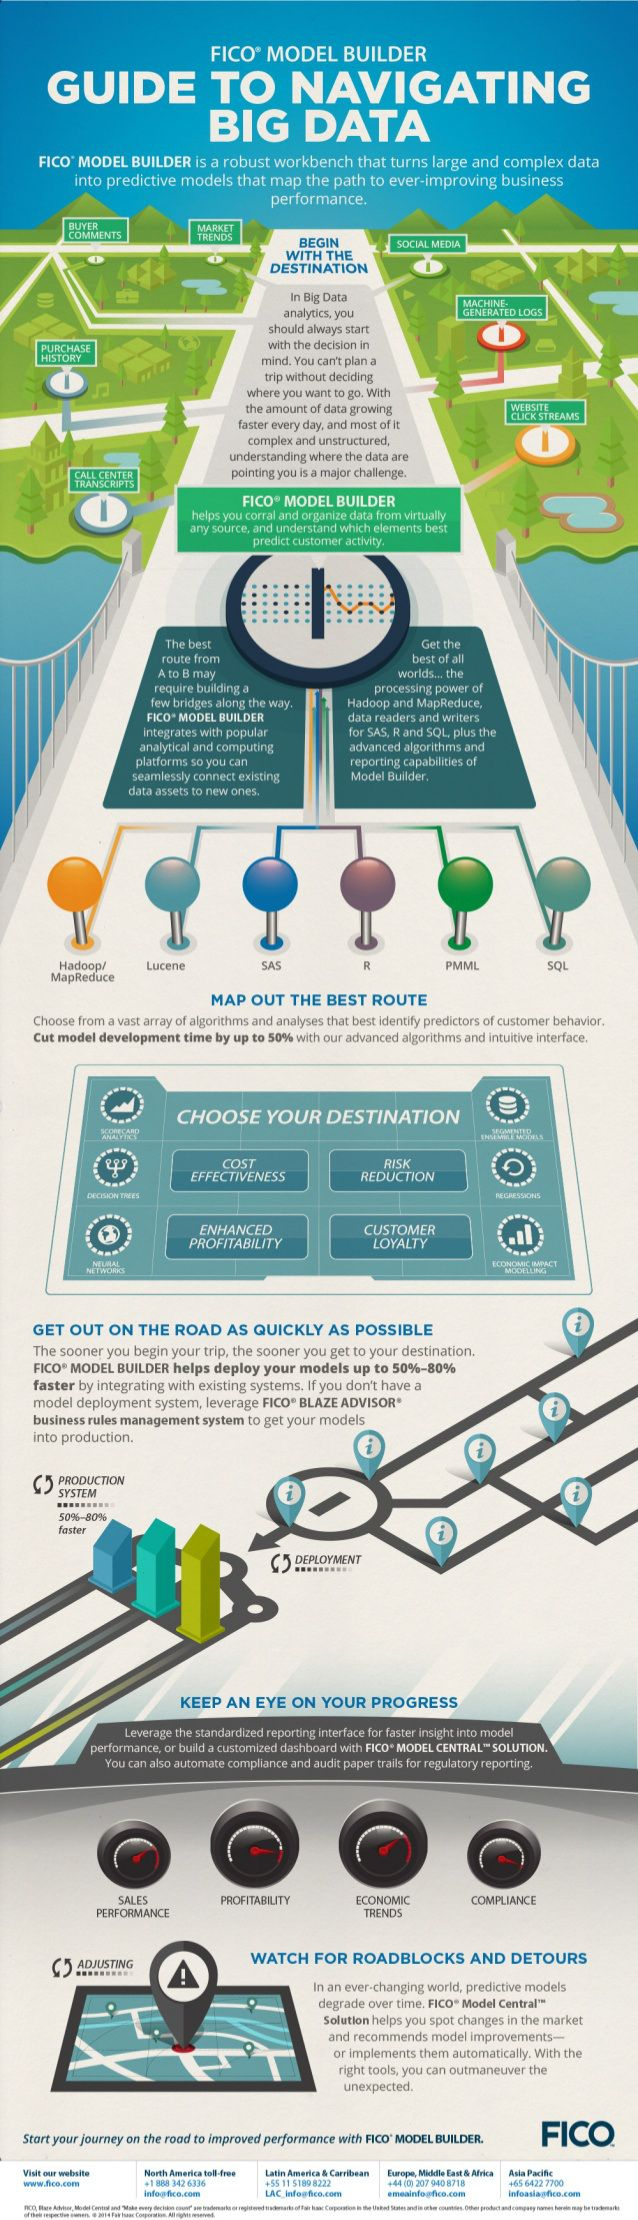 Guide to navigating Big data #infographic #bigdata